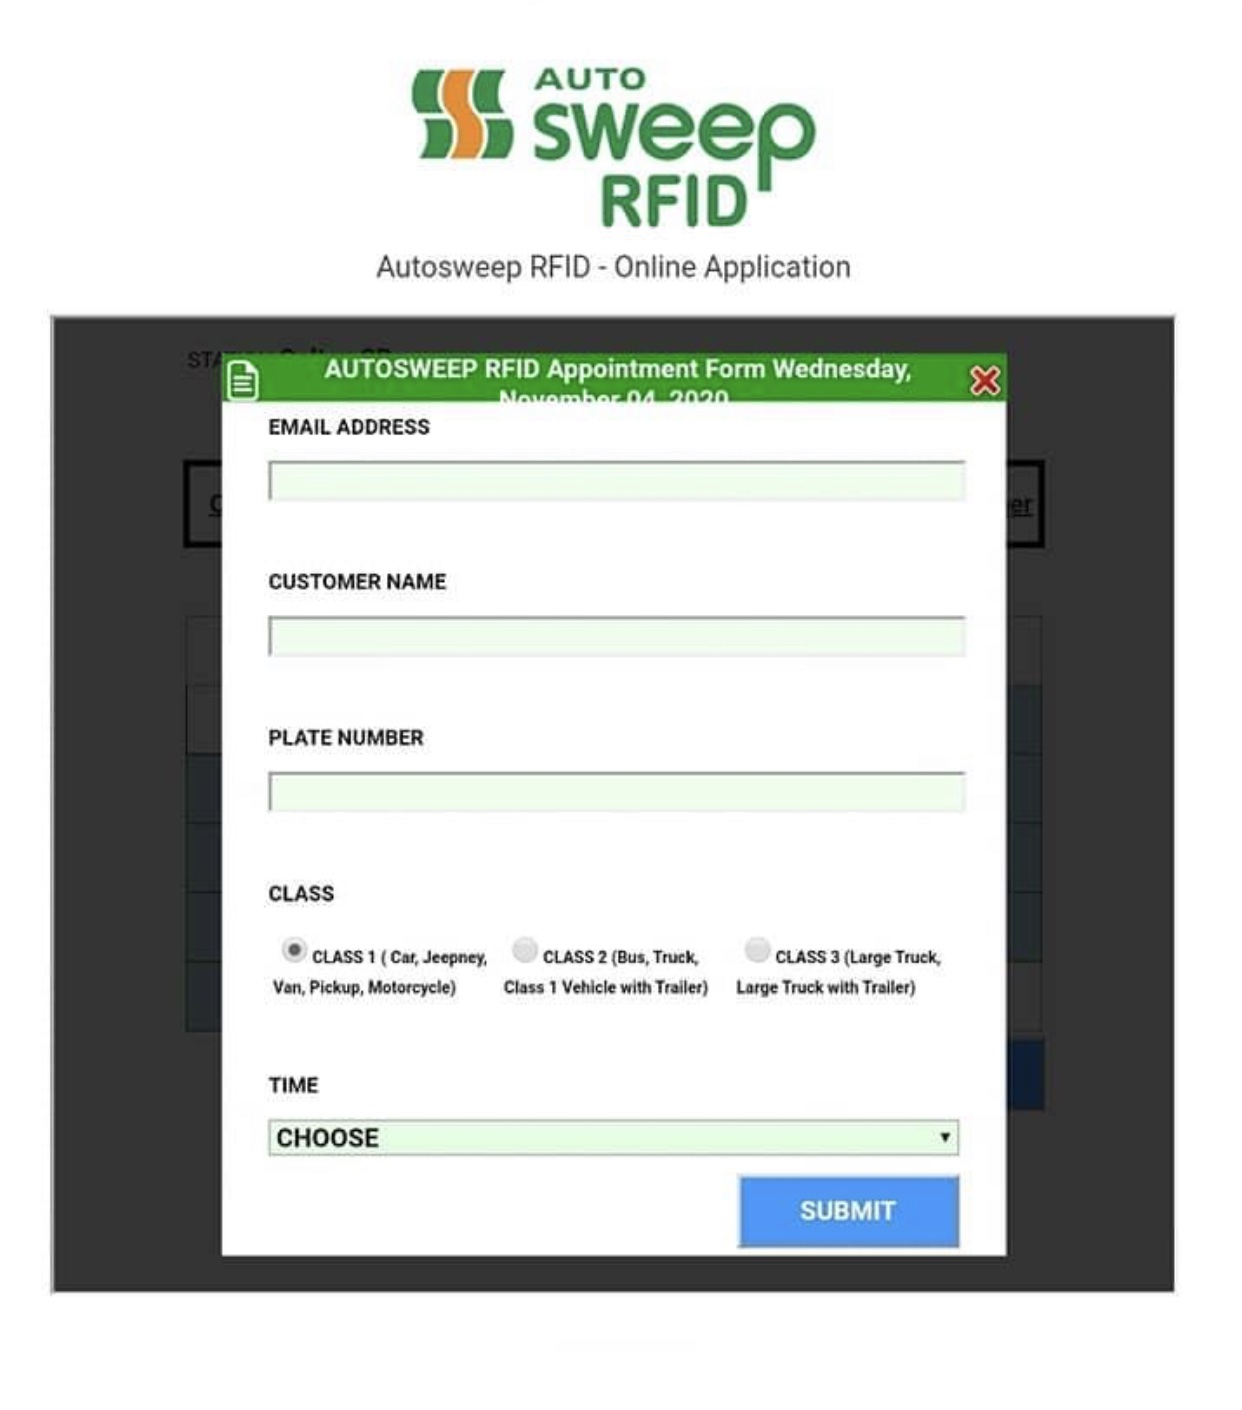 autosweep rfid application form